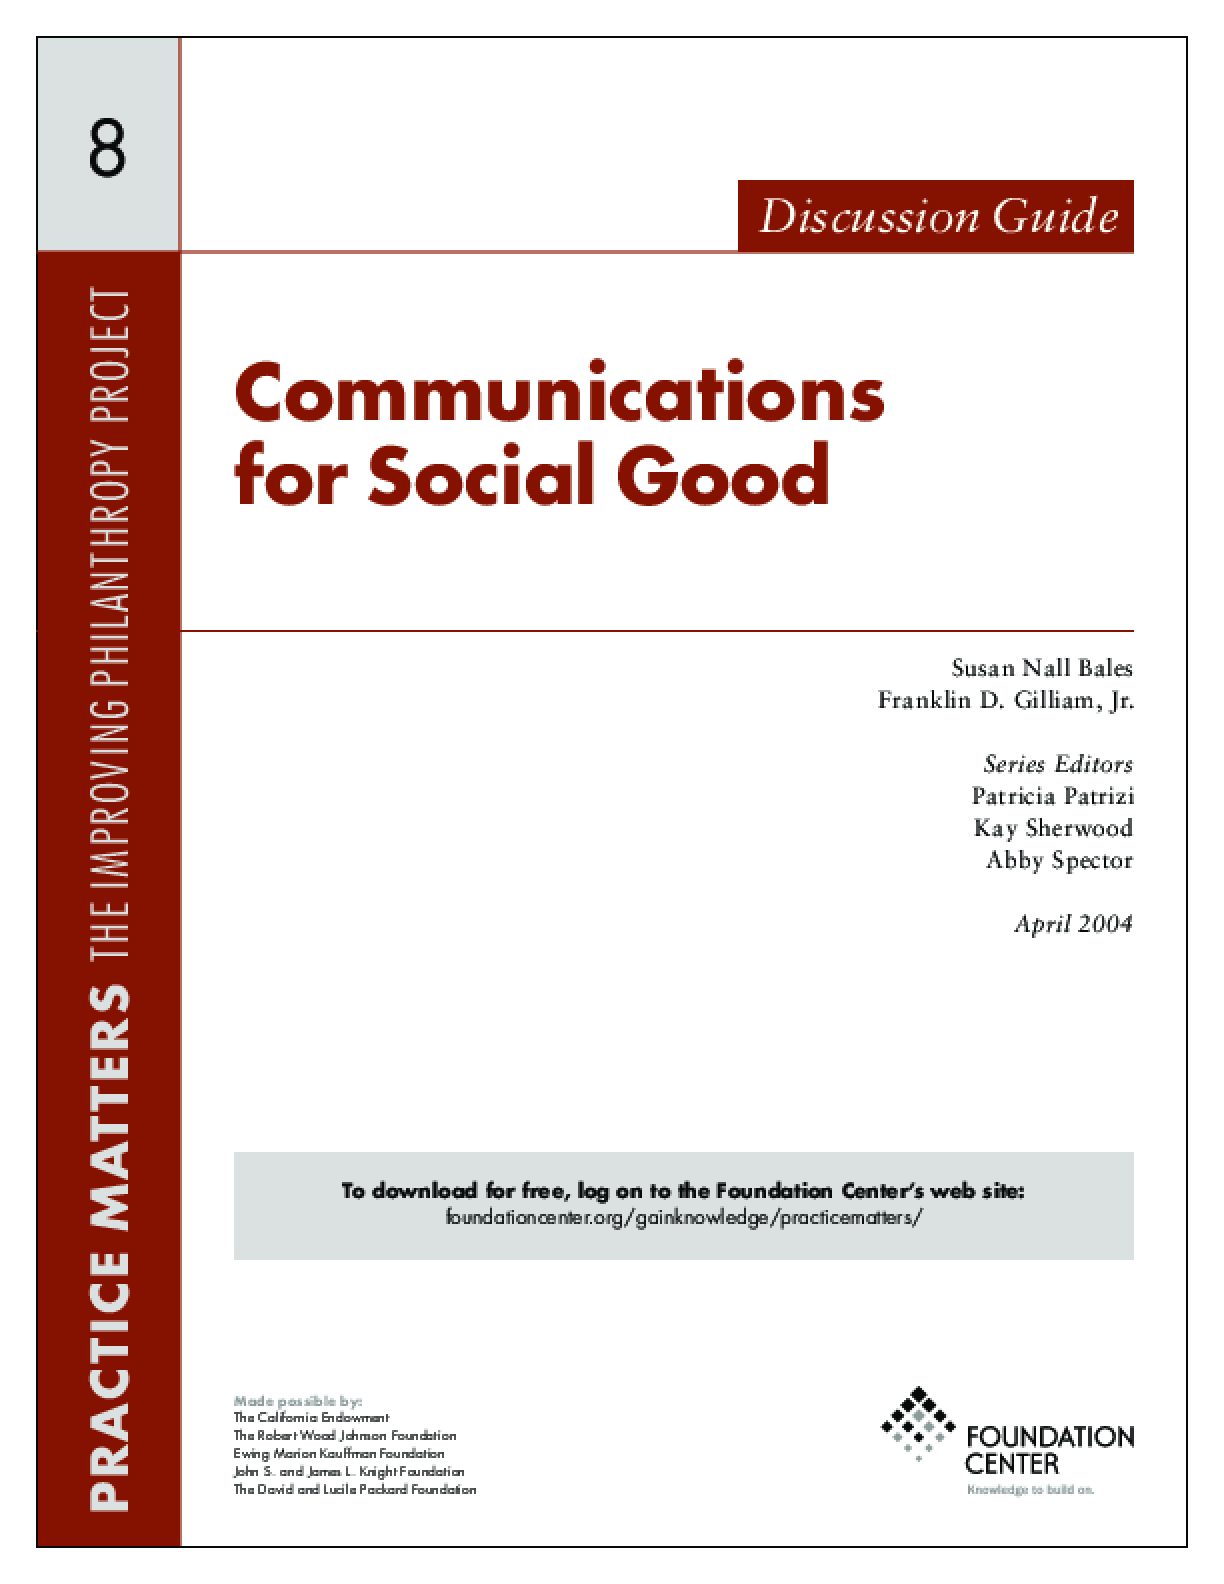 Communications for Social Good - Discussion Guide